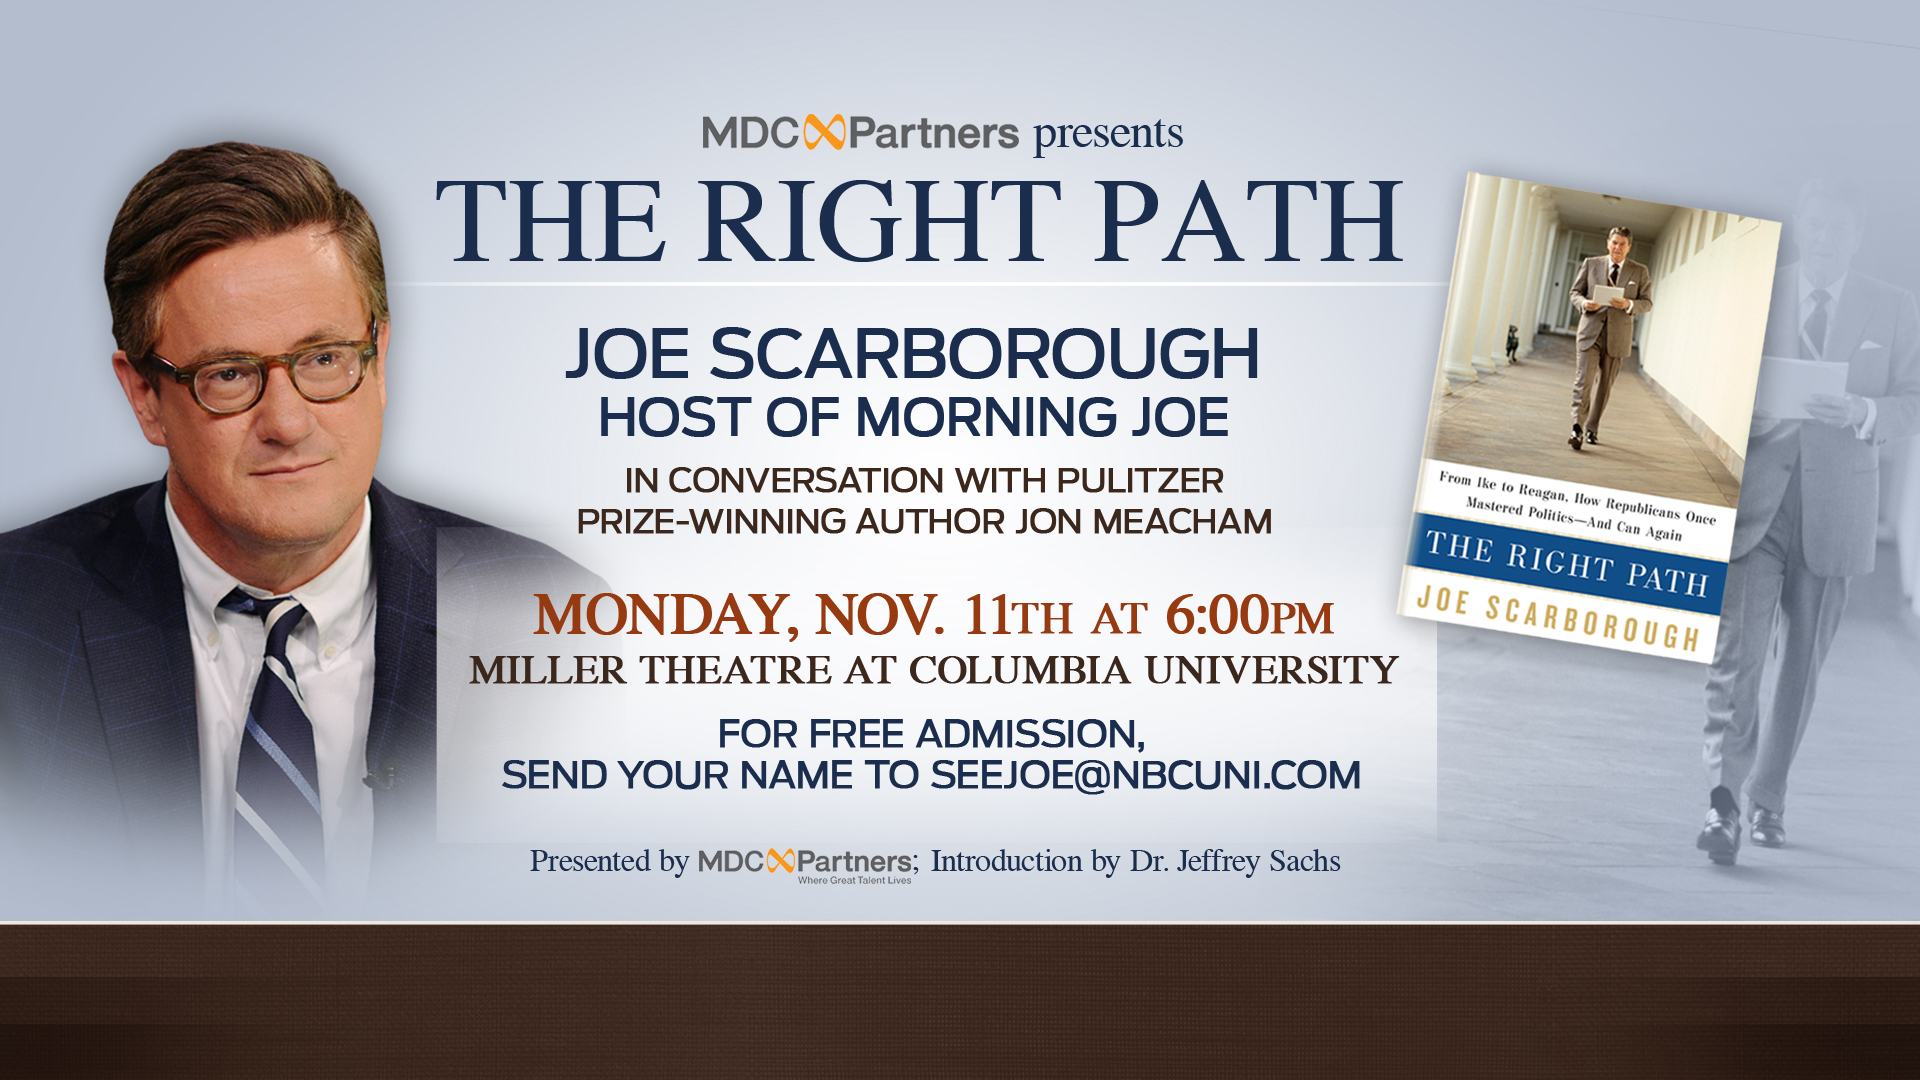 November 11 'The Right Path' event